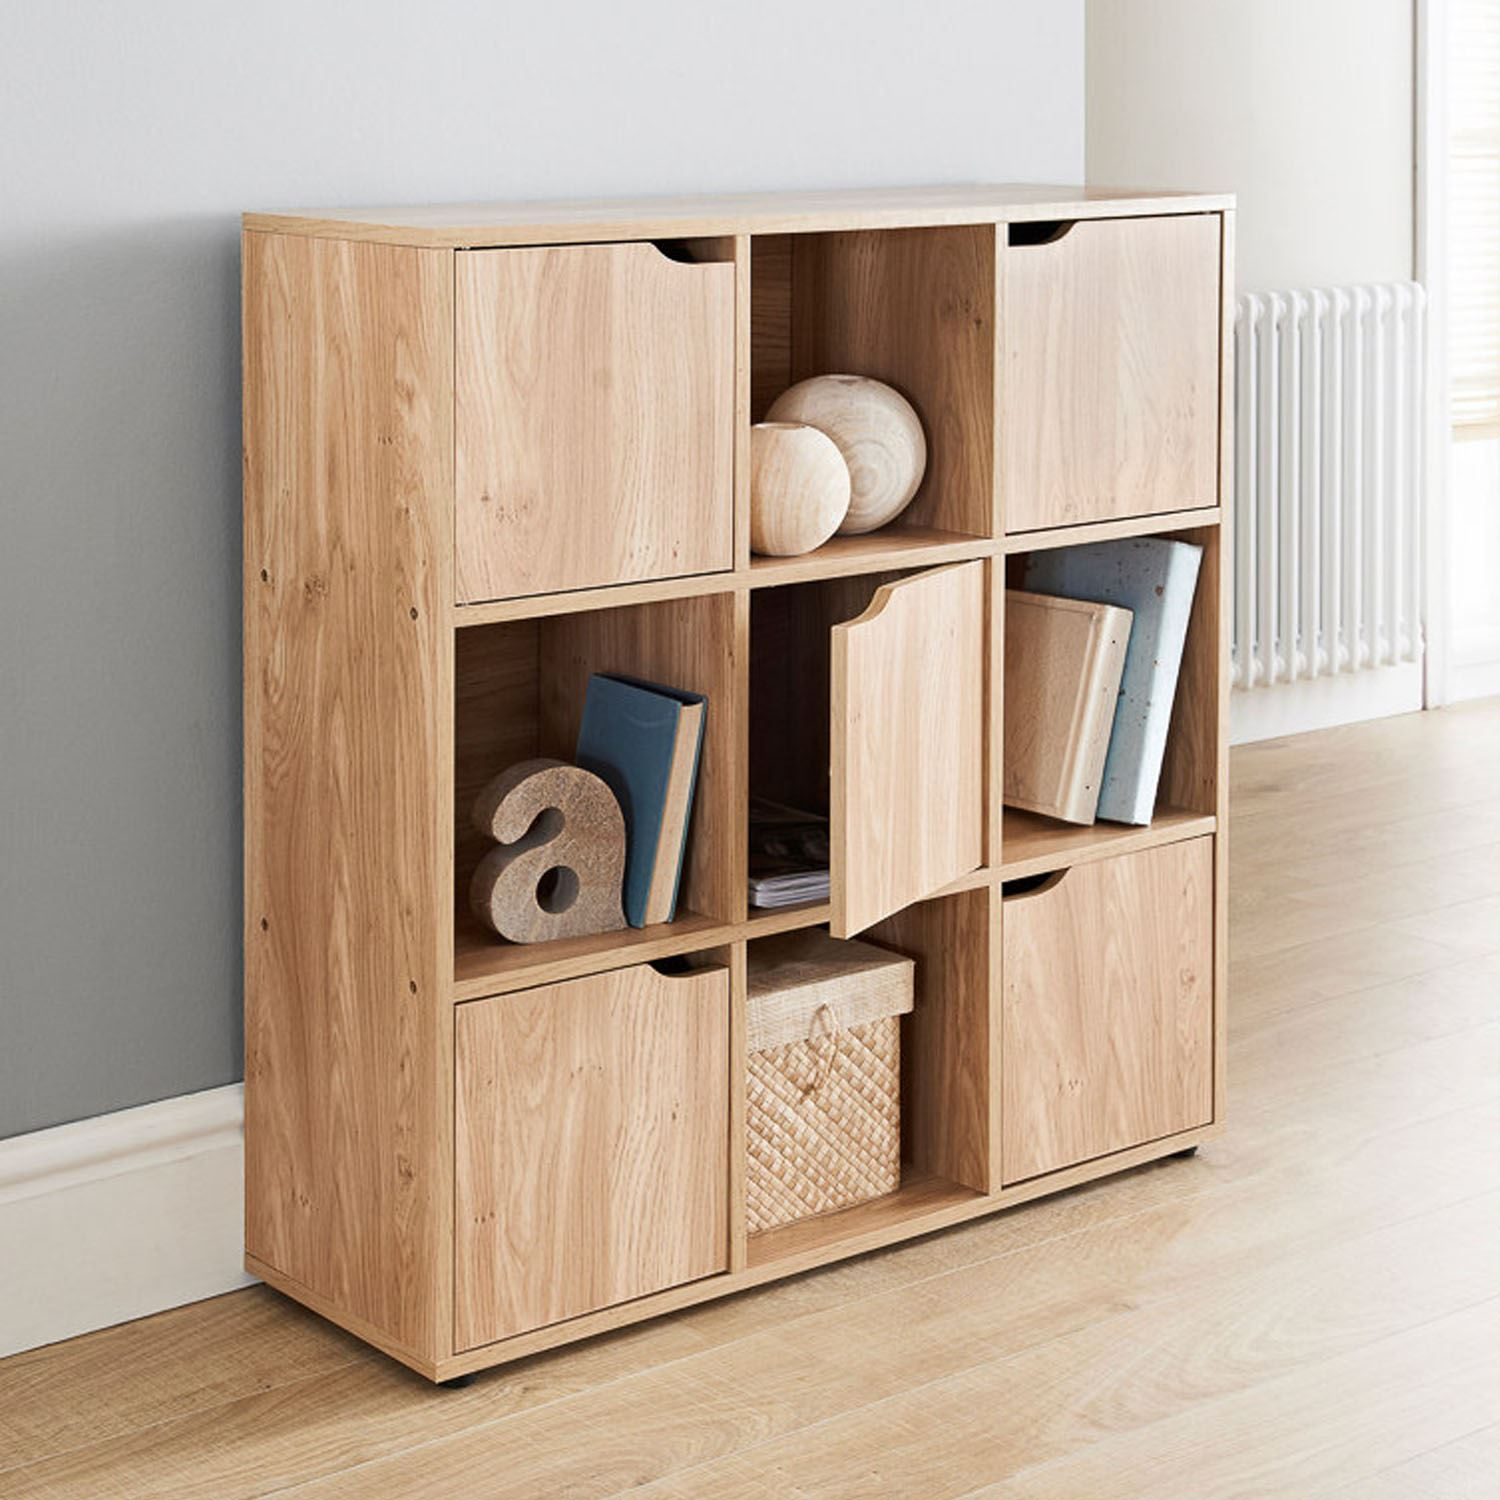 shelf options cubes bookshelf bookcases storage of types cube shelves